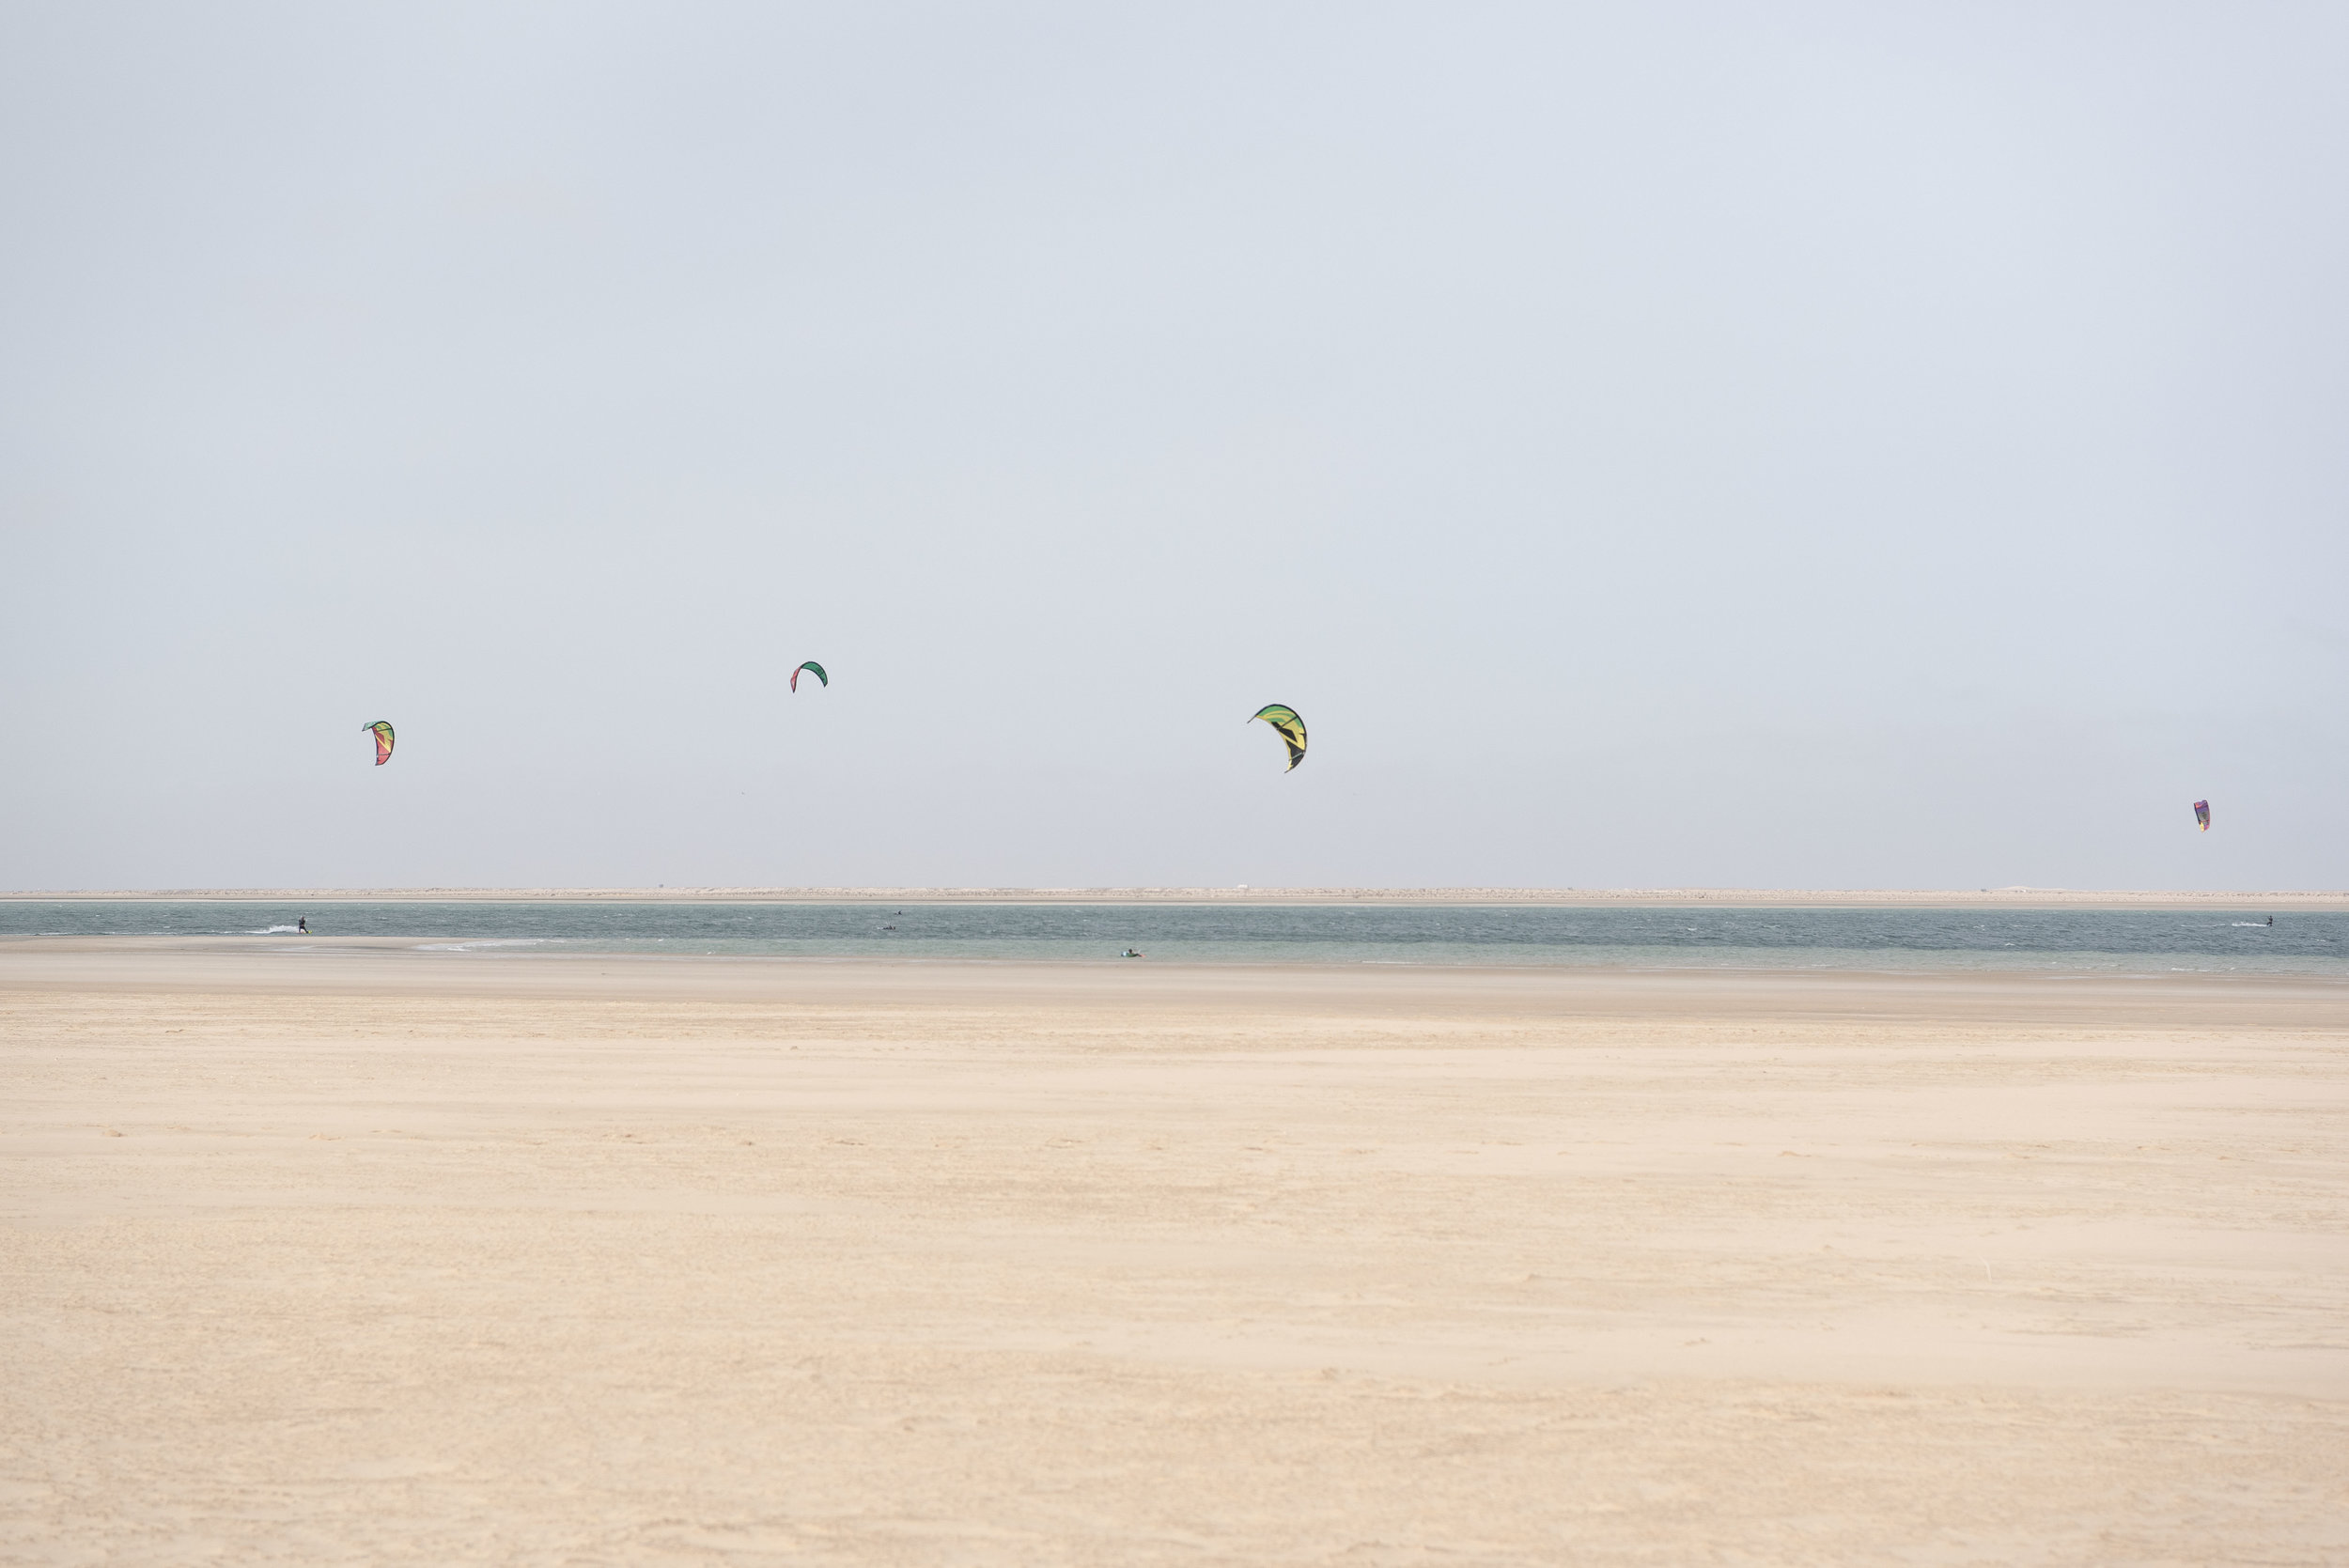 The Bay of Dakhla is considered one of the best kite-surfing spots in the world.